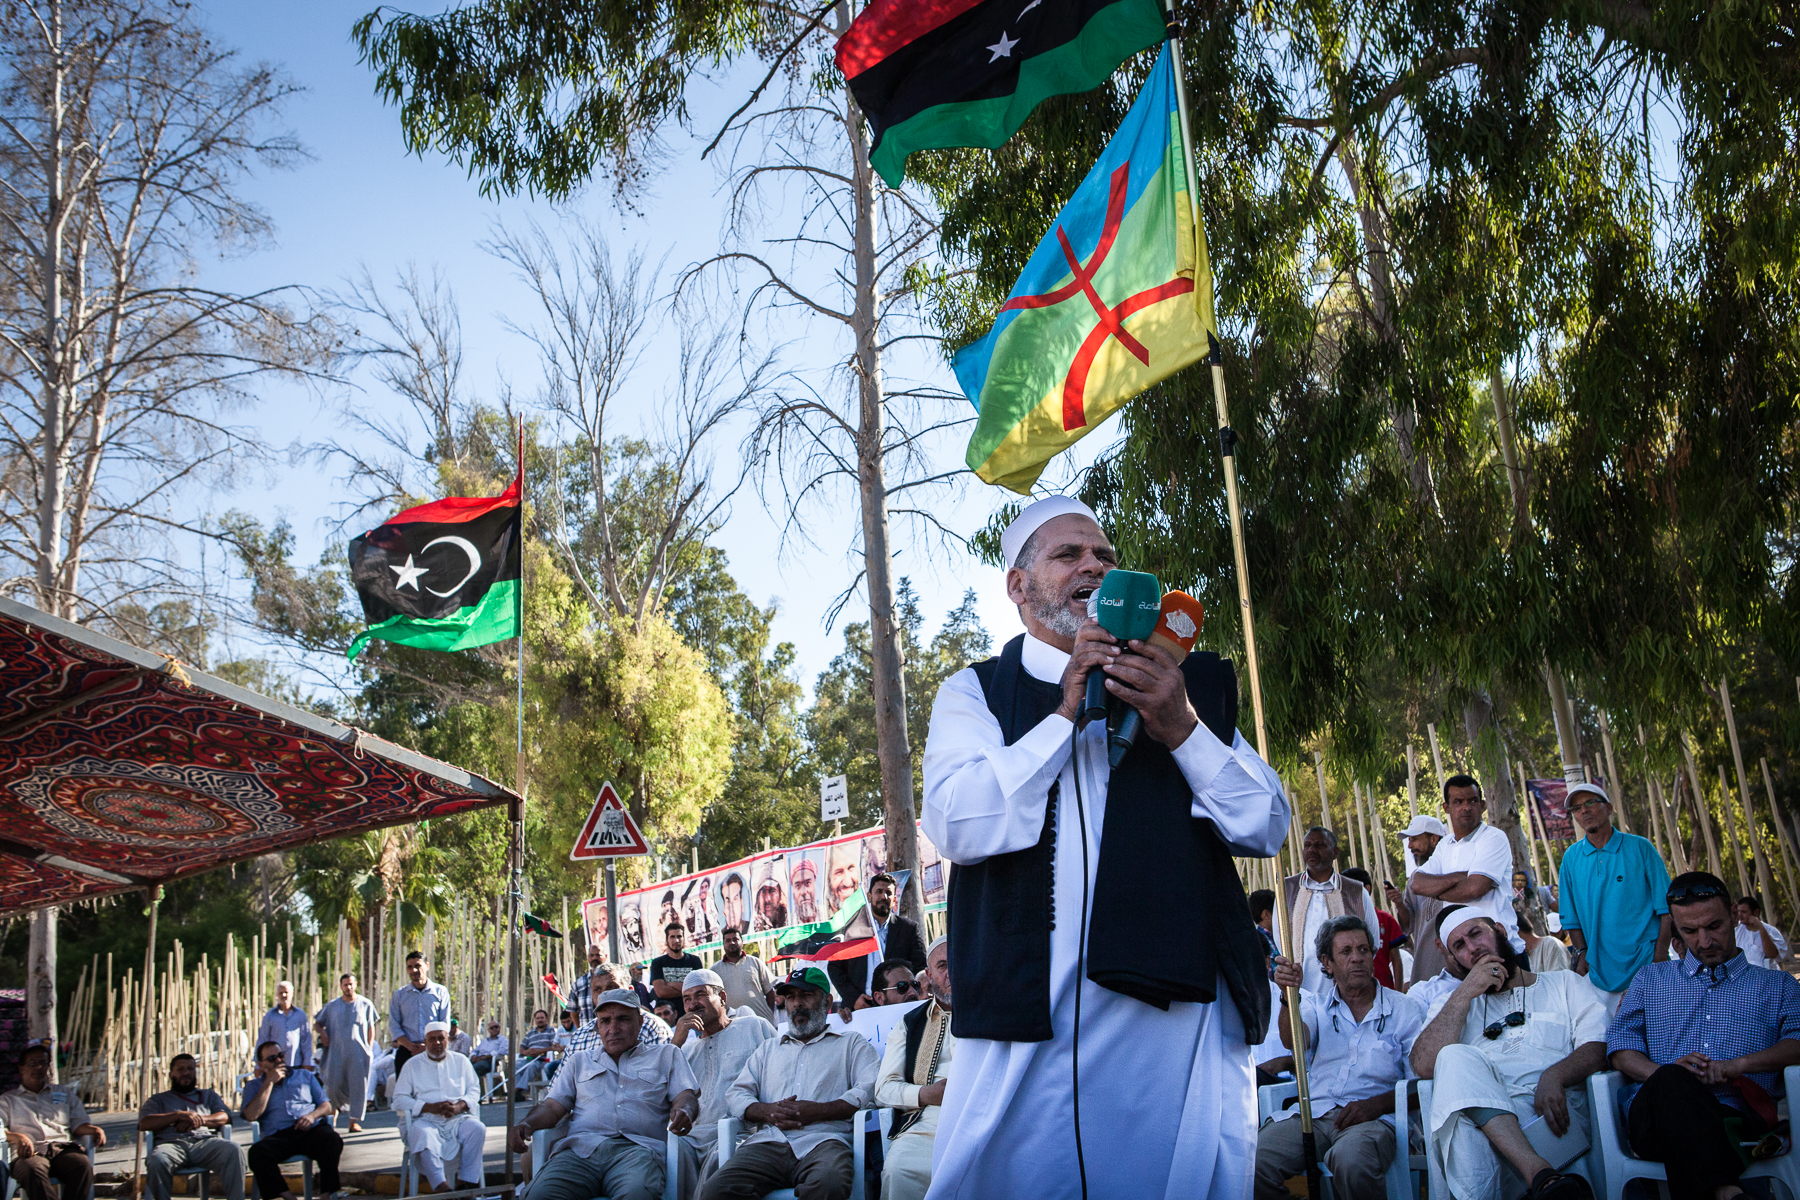 Tripoli, le 7 Juillet 2015. Au cours d'une manifestation en faveur du gouvernement Fajr Libya (aube de la Libye) non reconnu par la communauté internationale.  Tripoli, July 7, 2015. During a demonstration in support of Libya Fajr government  (dawn of Libya), not recognized by the international community.